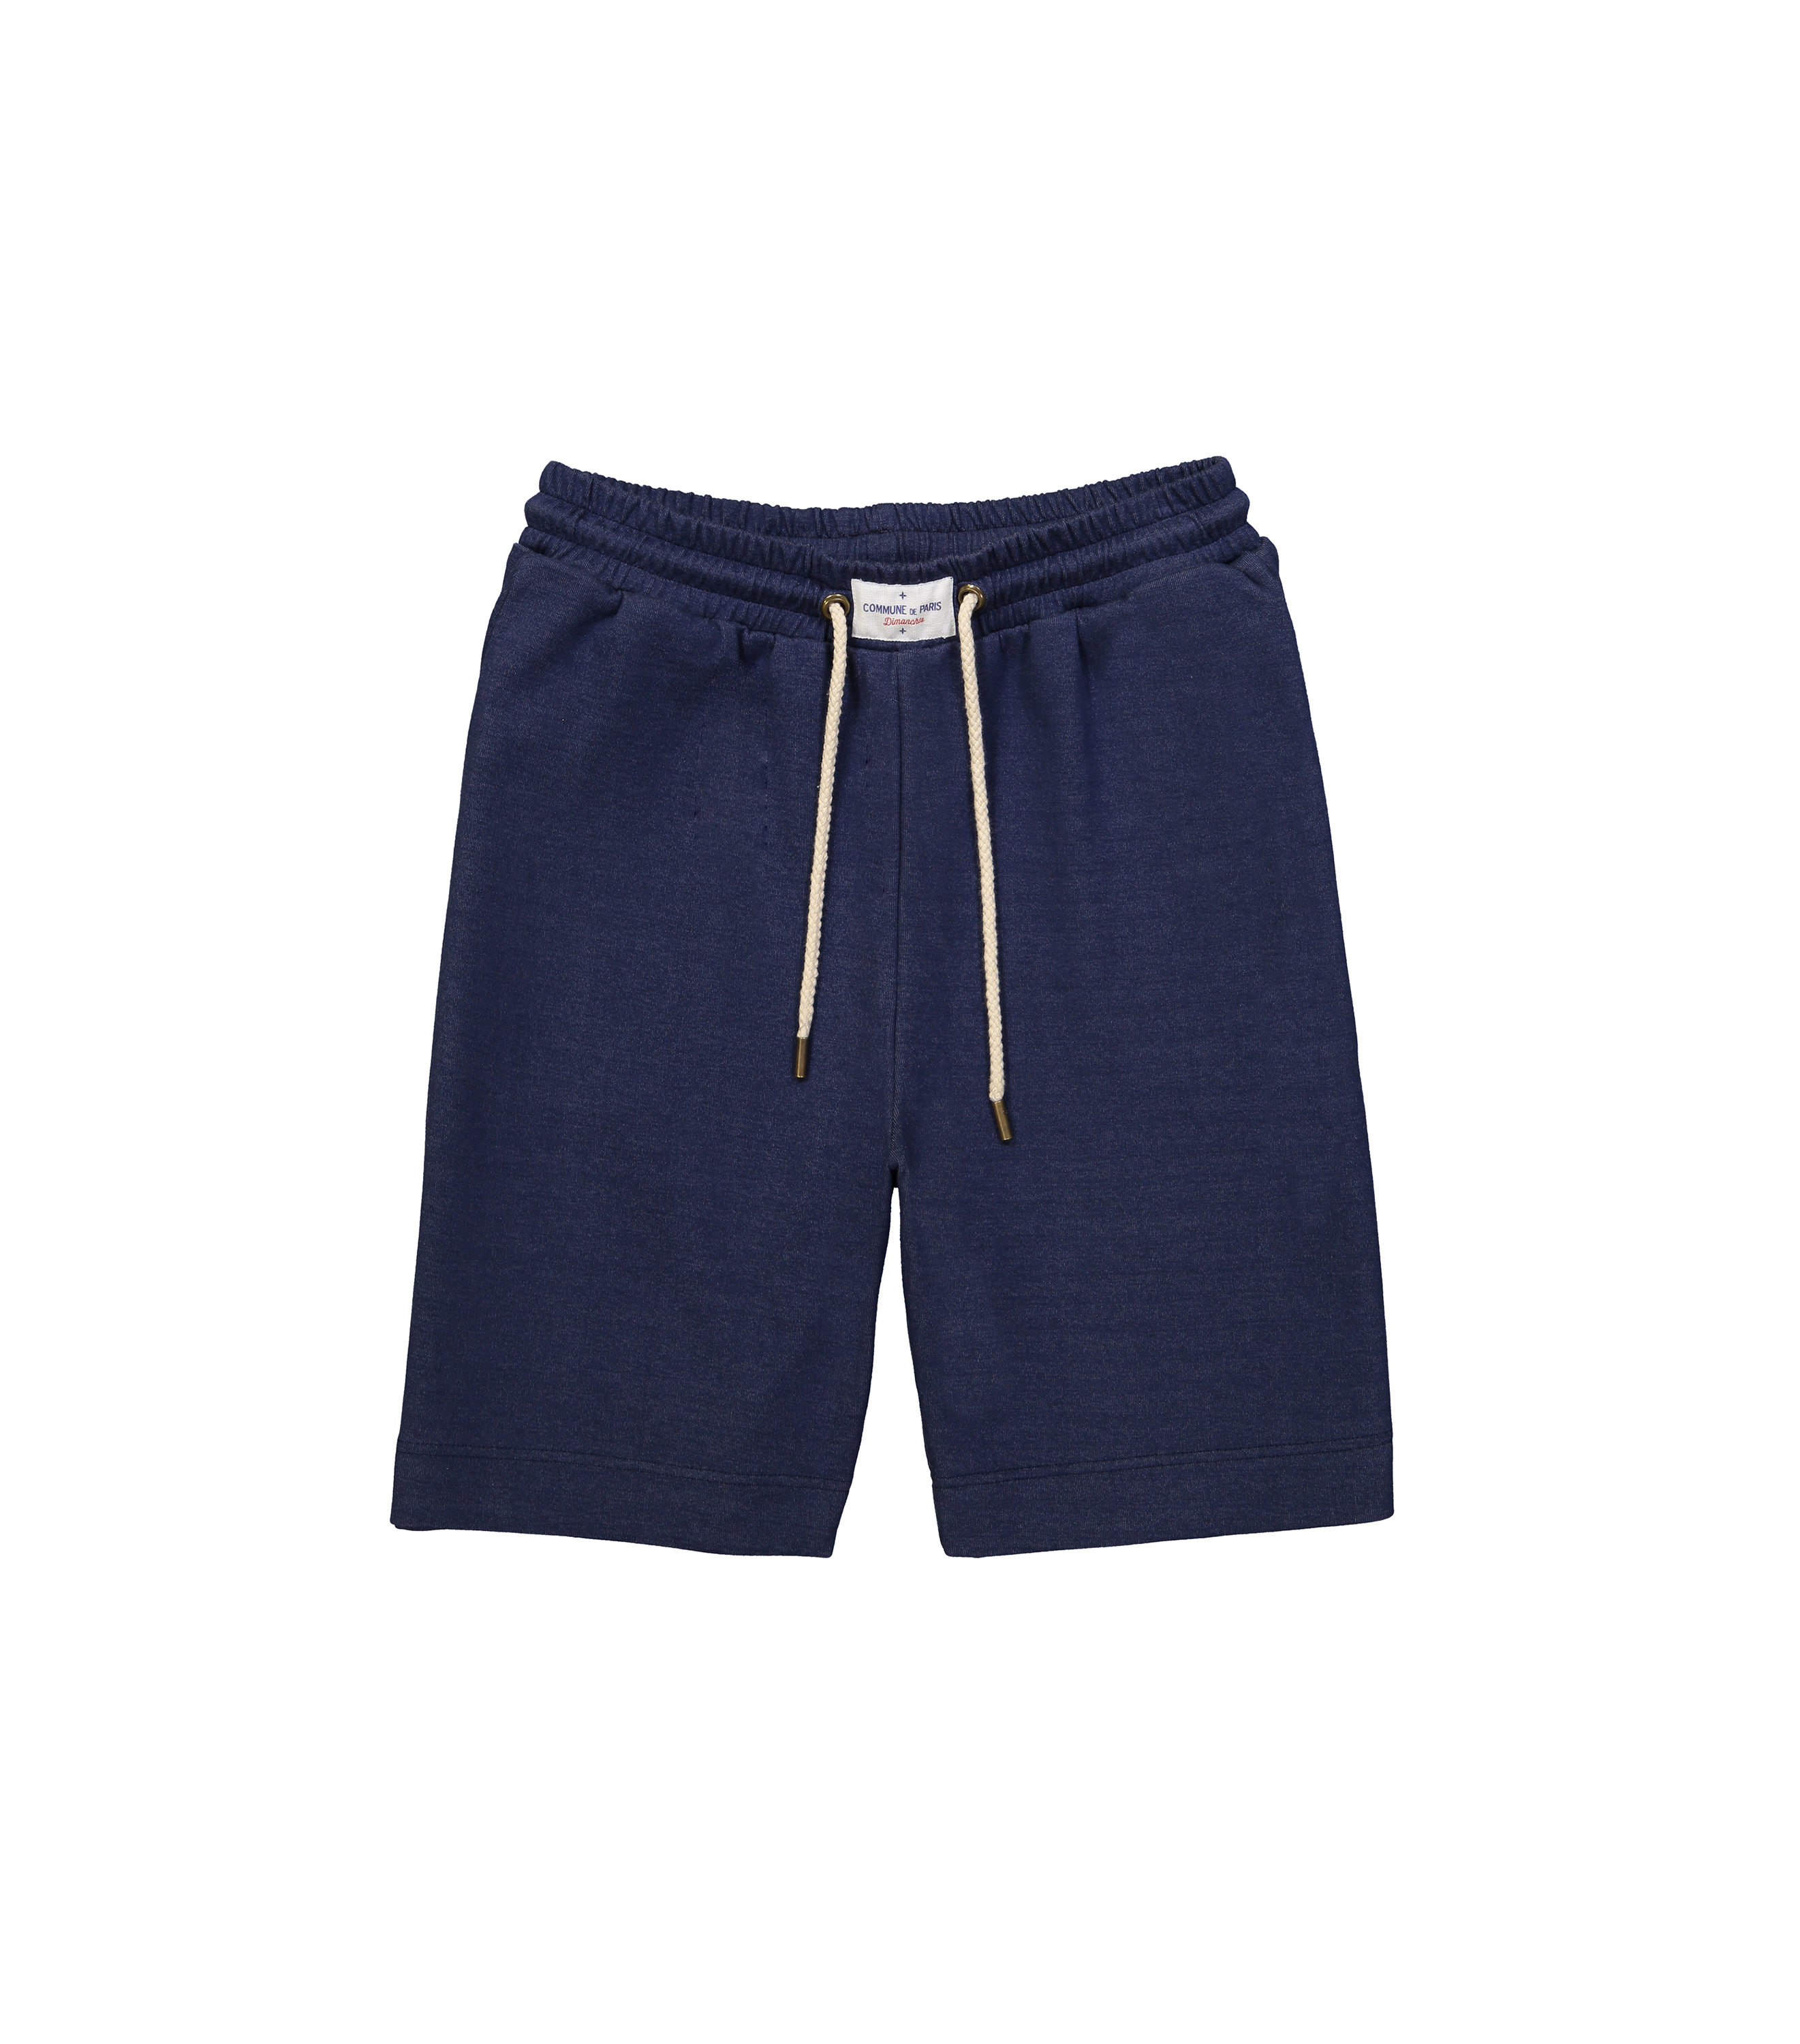 SHORTPANTS SP.DIM05 - Navy